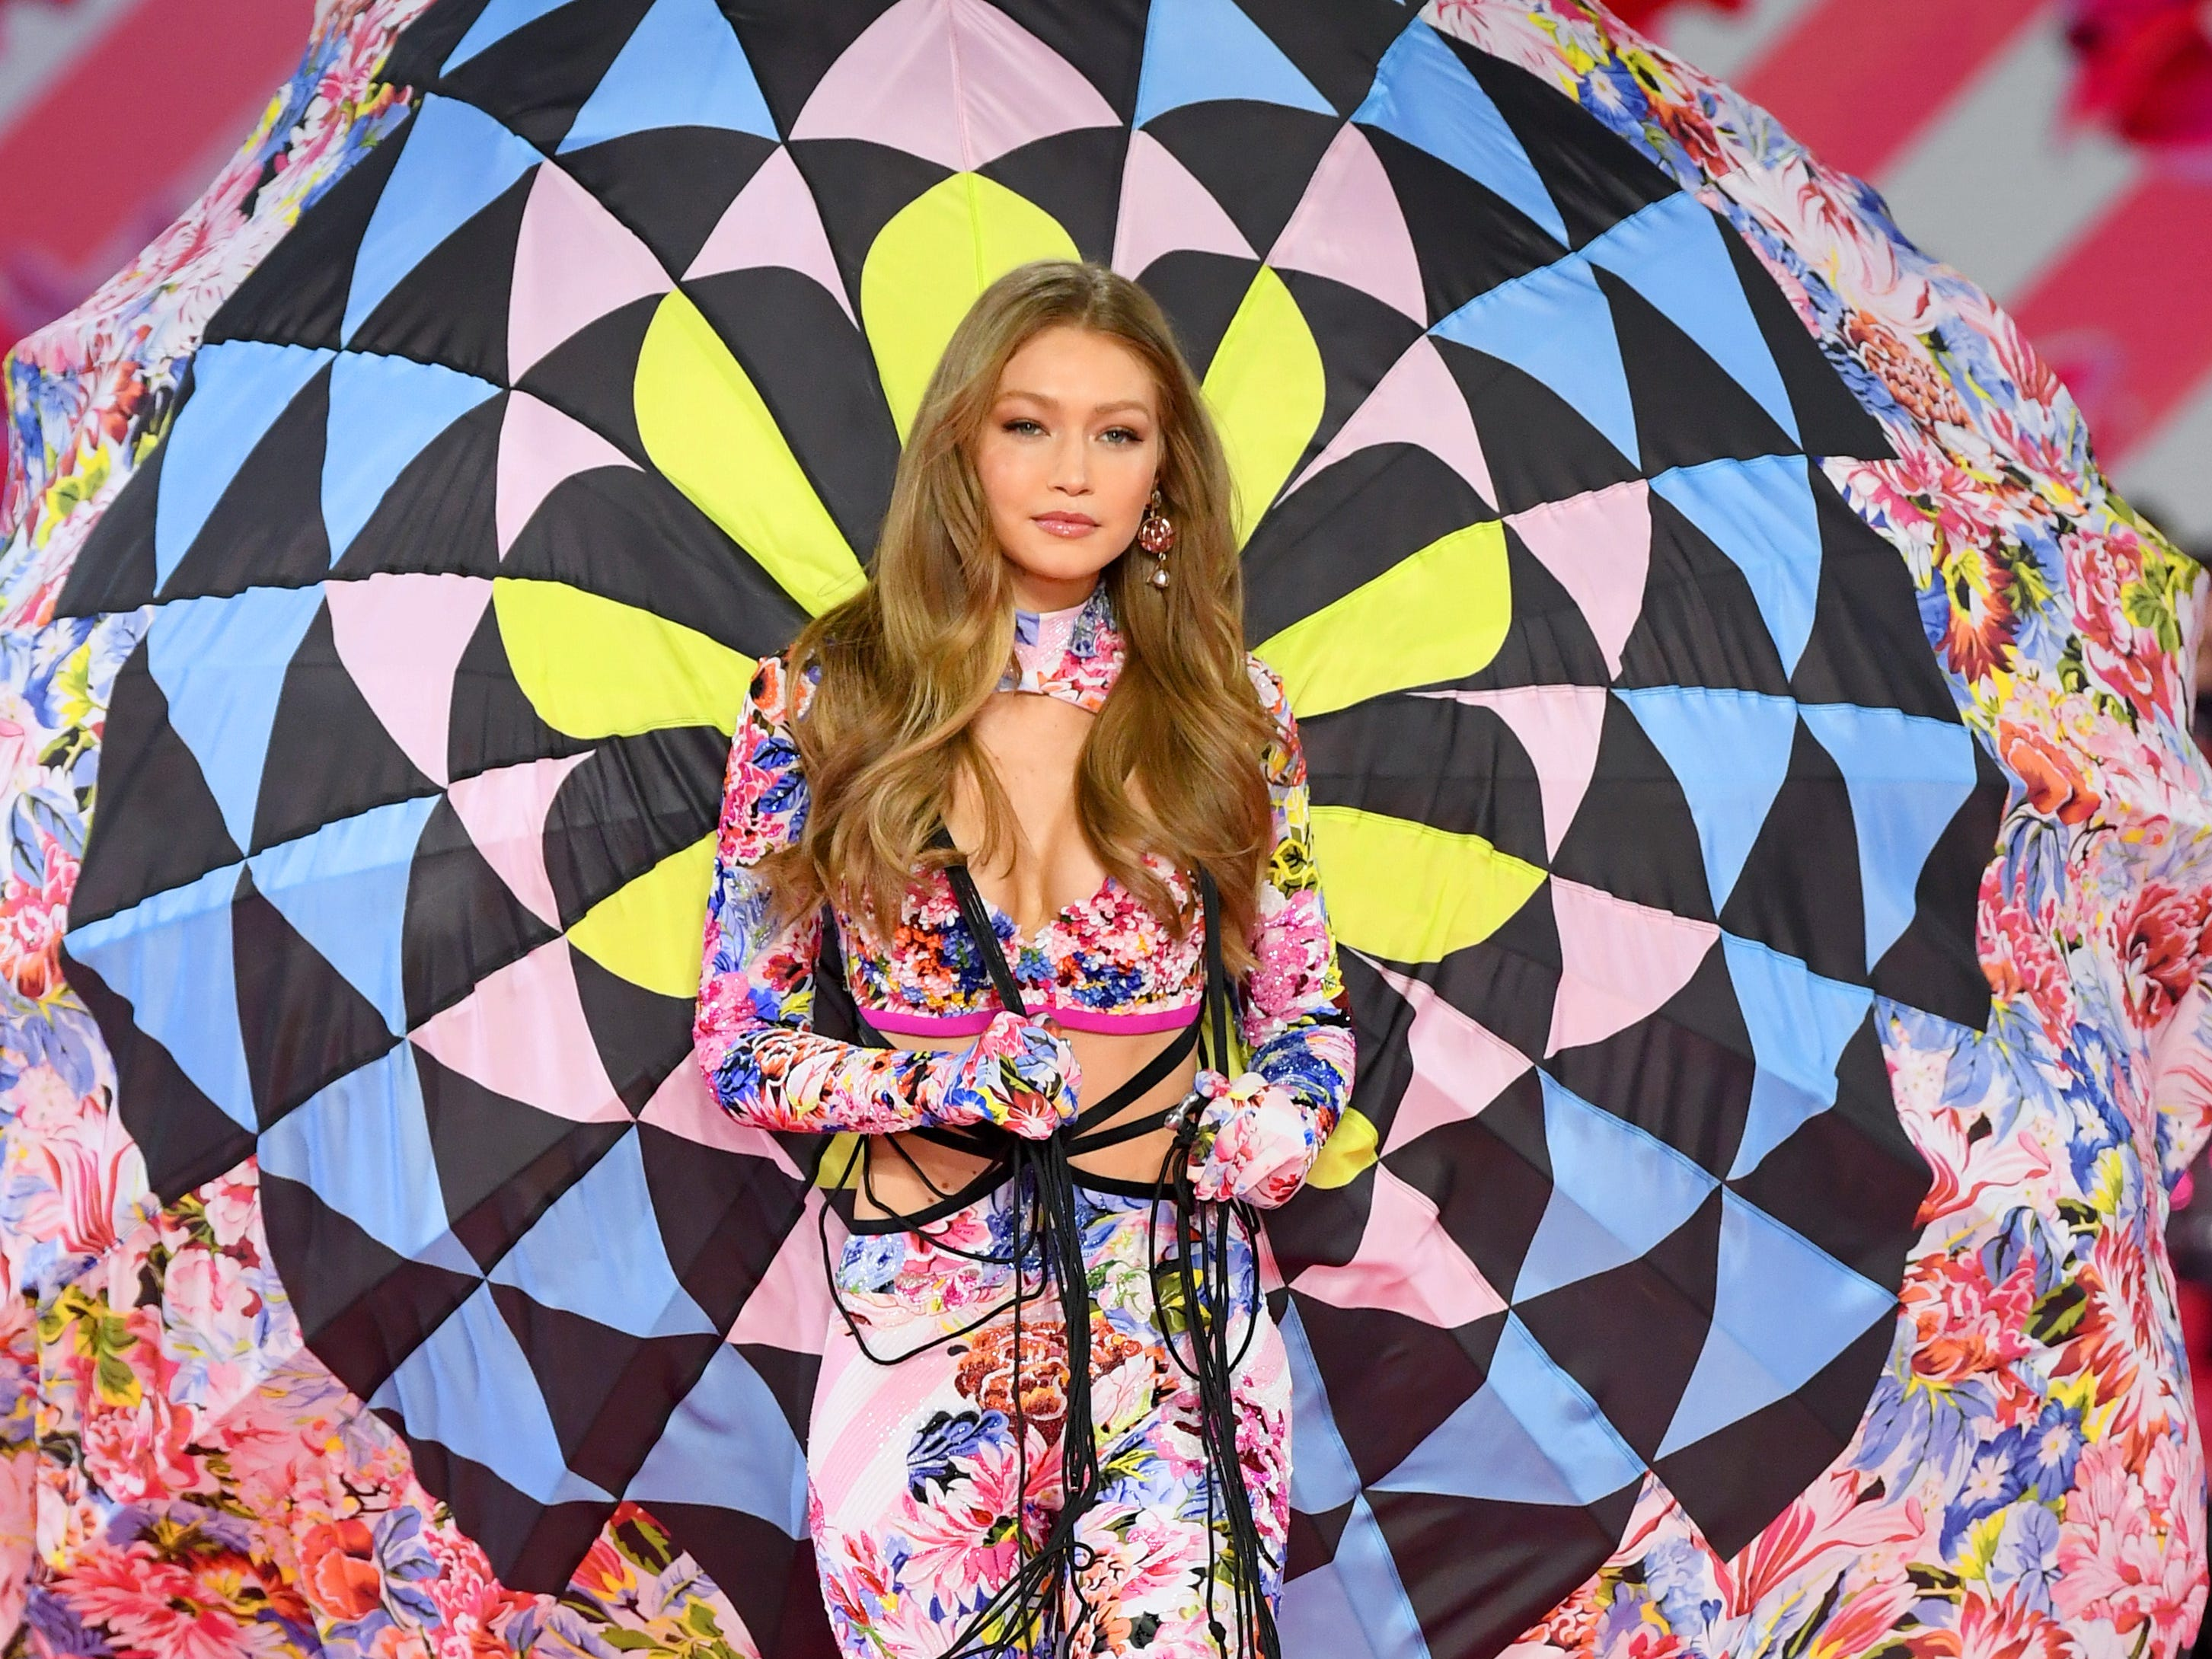 NEW YORK, NY - NOVEMBER 08:  Gigi Hadid walks the runway during the 2018 Victoria's Secret Fashion Show at Pier 94 on November 8, 2018 in New York City.  (Photo by Dimitrios Kambouris/Getty Images for Victoria's Secret) ORG XMIT: 775252749 ORIG FILE ID: 1059370502